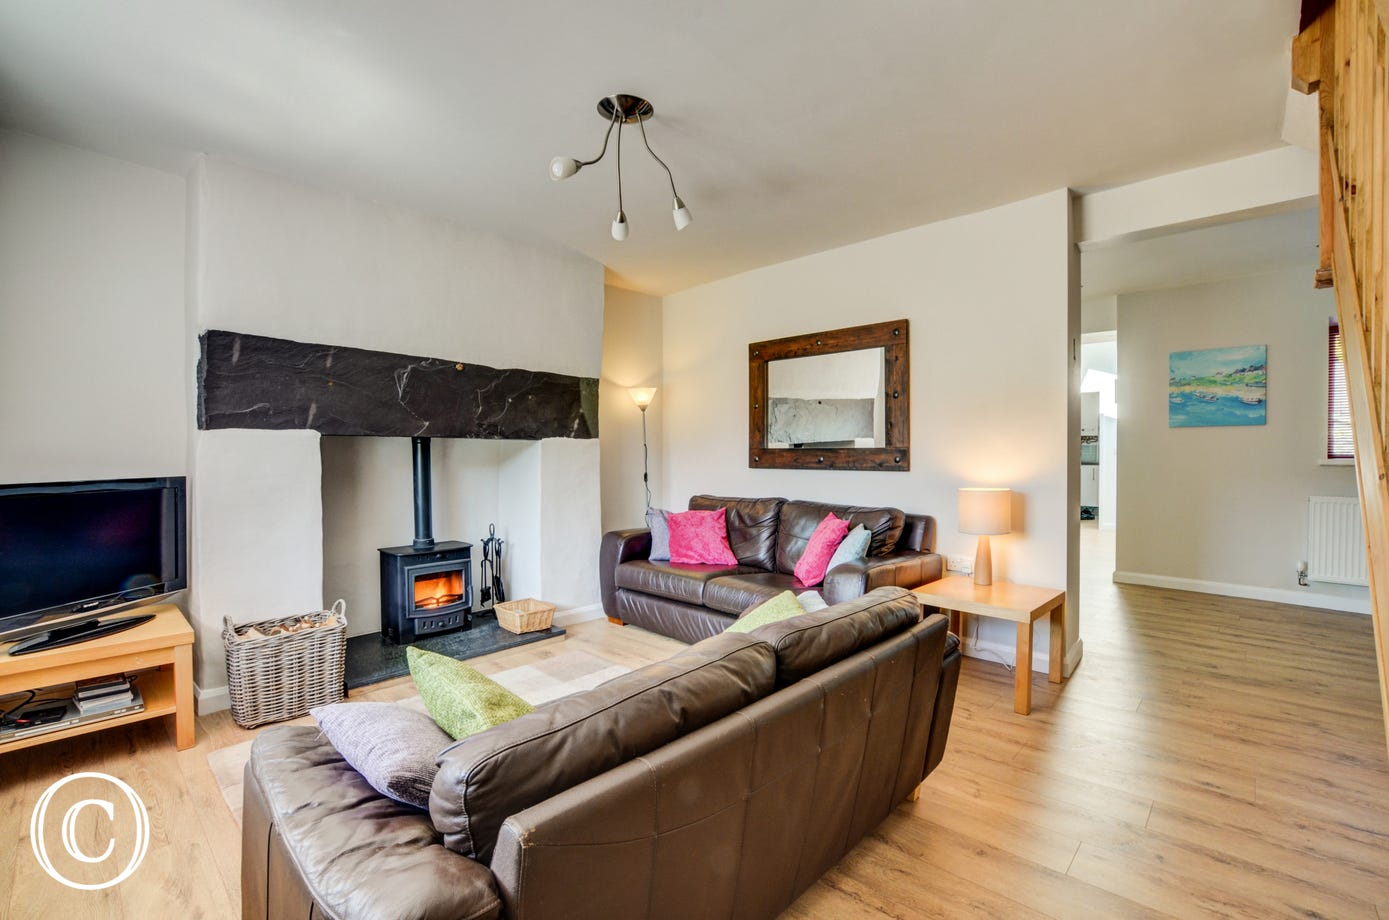 Relax on the modern leather sofas and enjoy a roaring fire from the woodburner